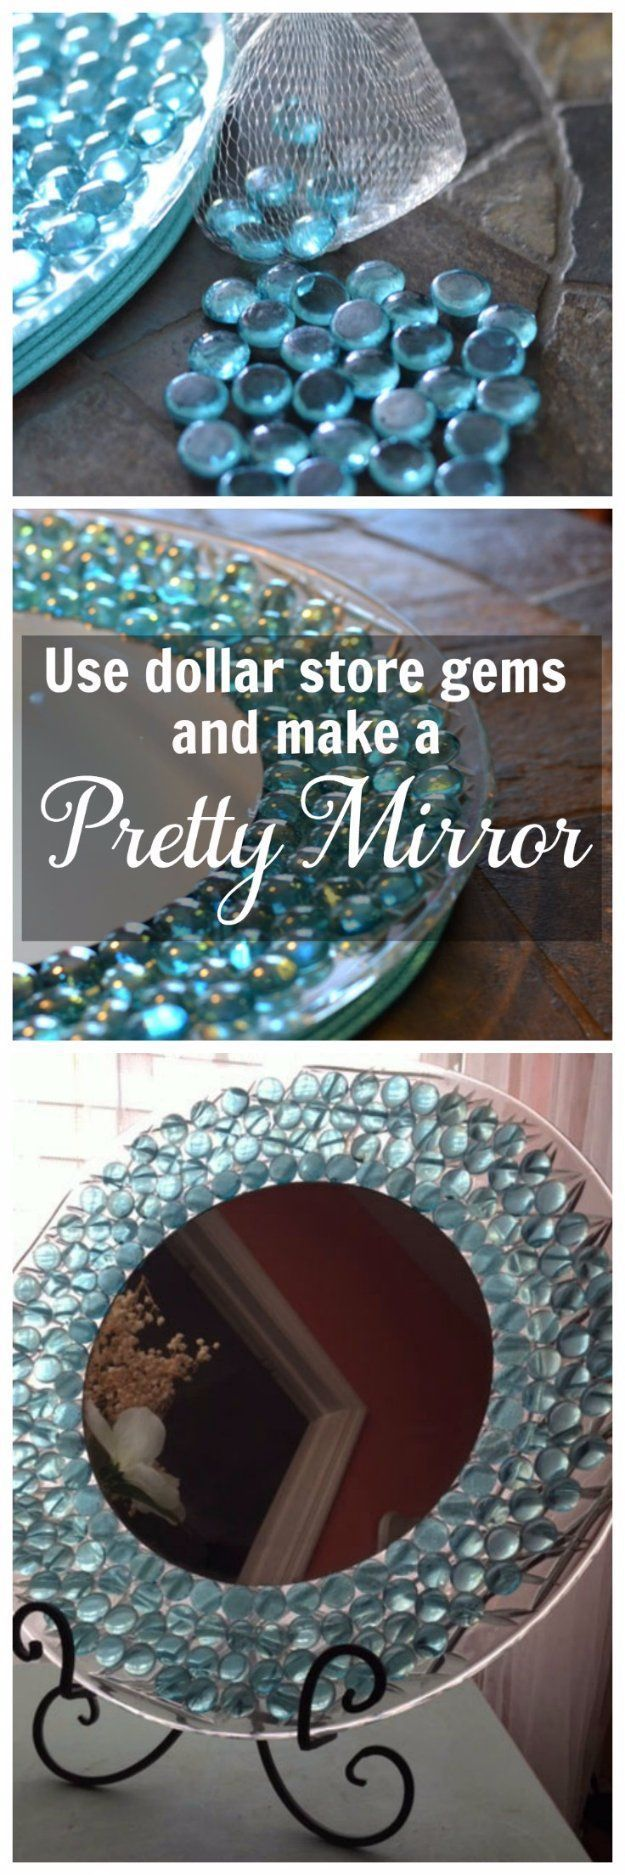 50 Crafts For Teens To Make And Sell